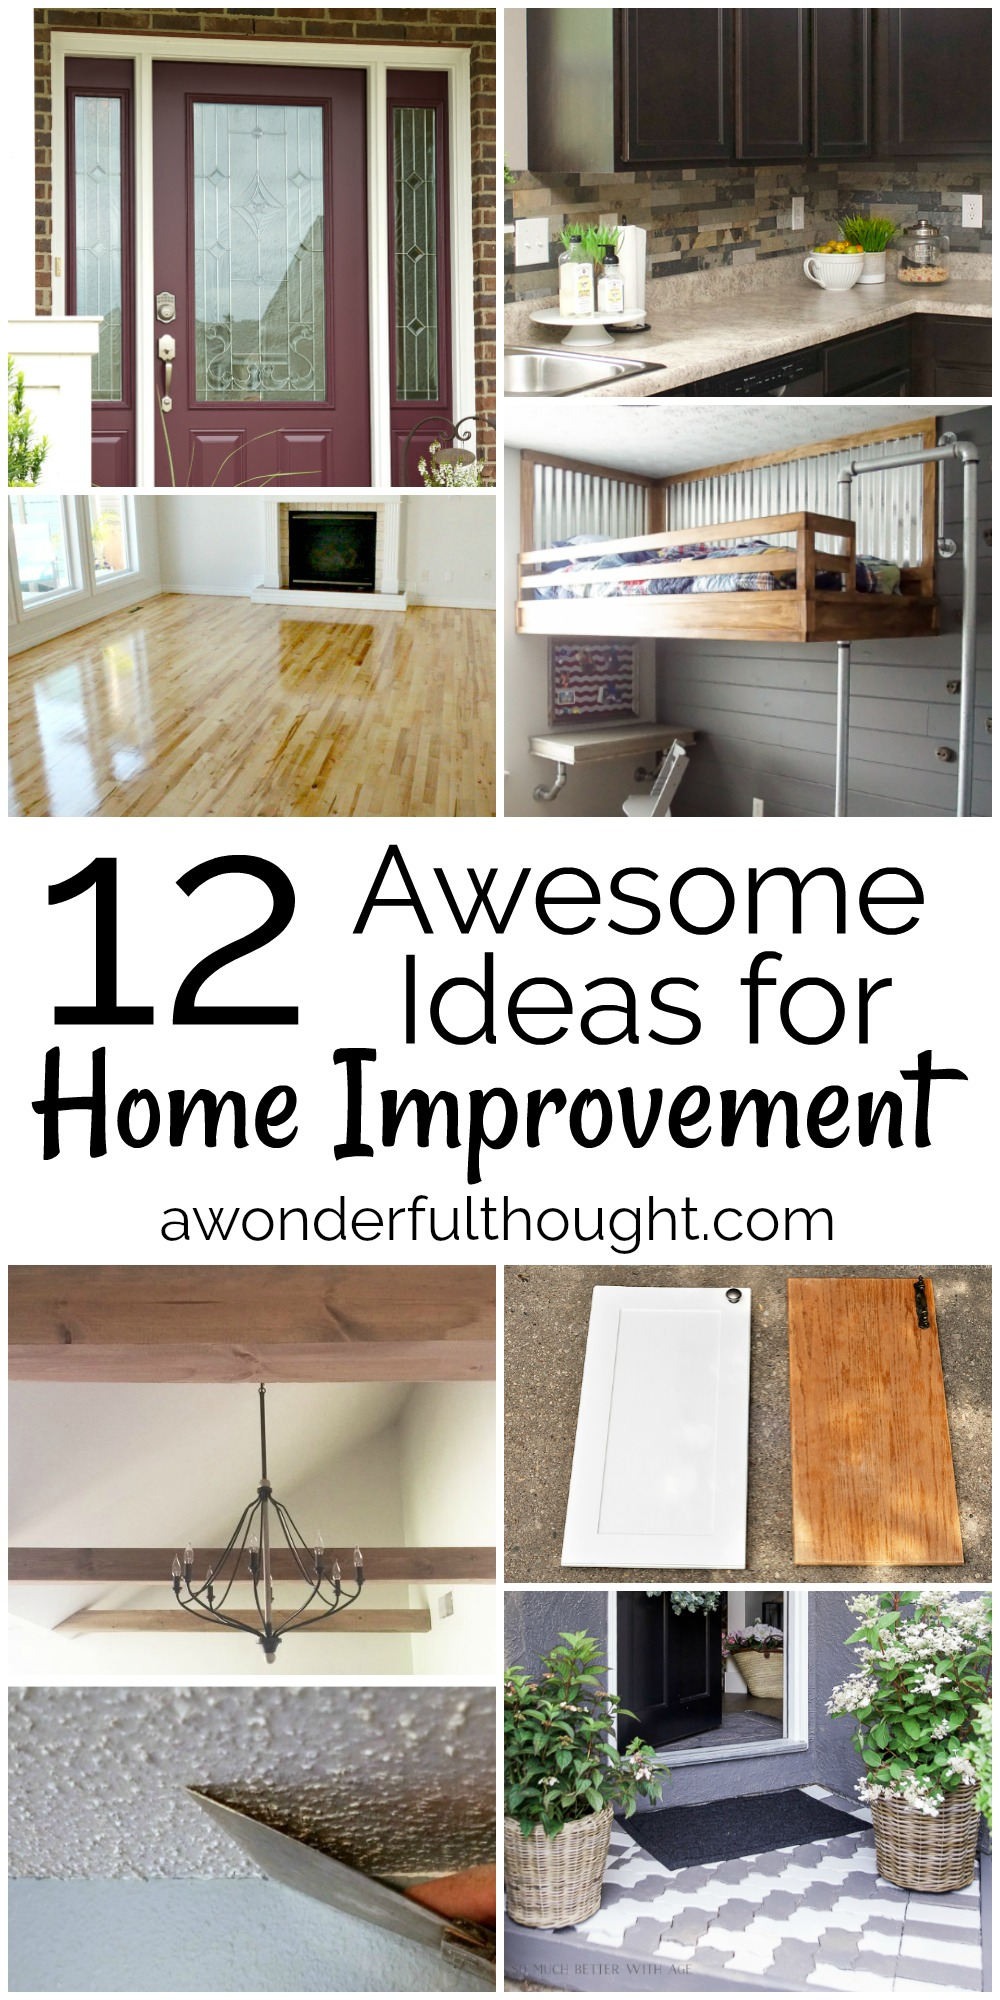 Awesome Home Improvement Ideas Mm A Wonderful Thought